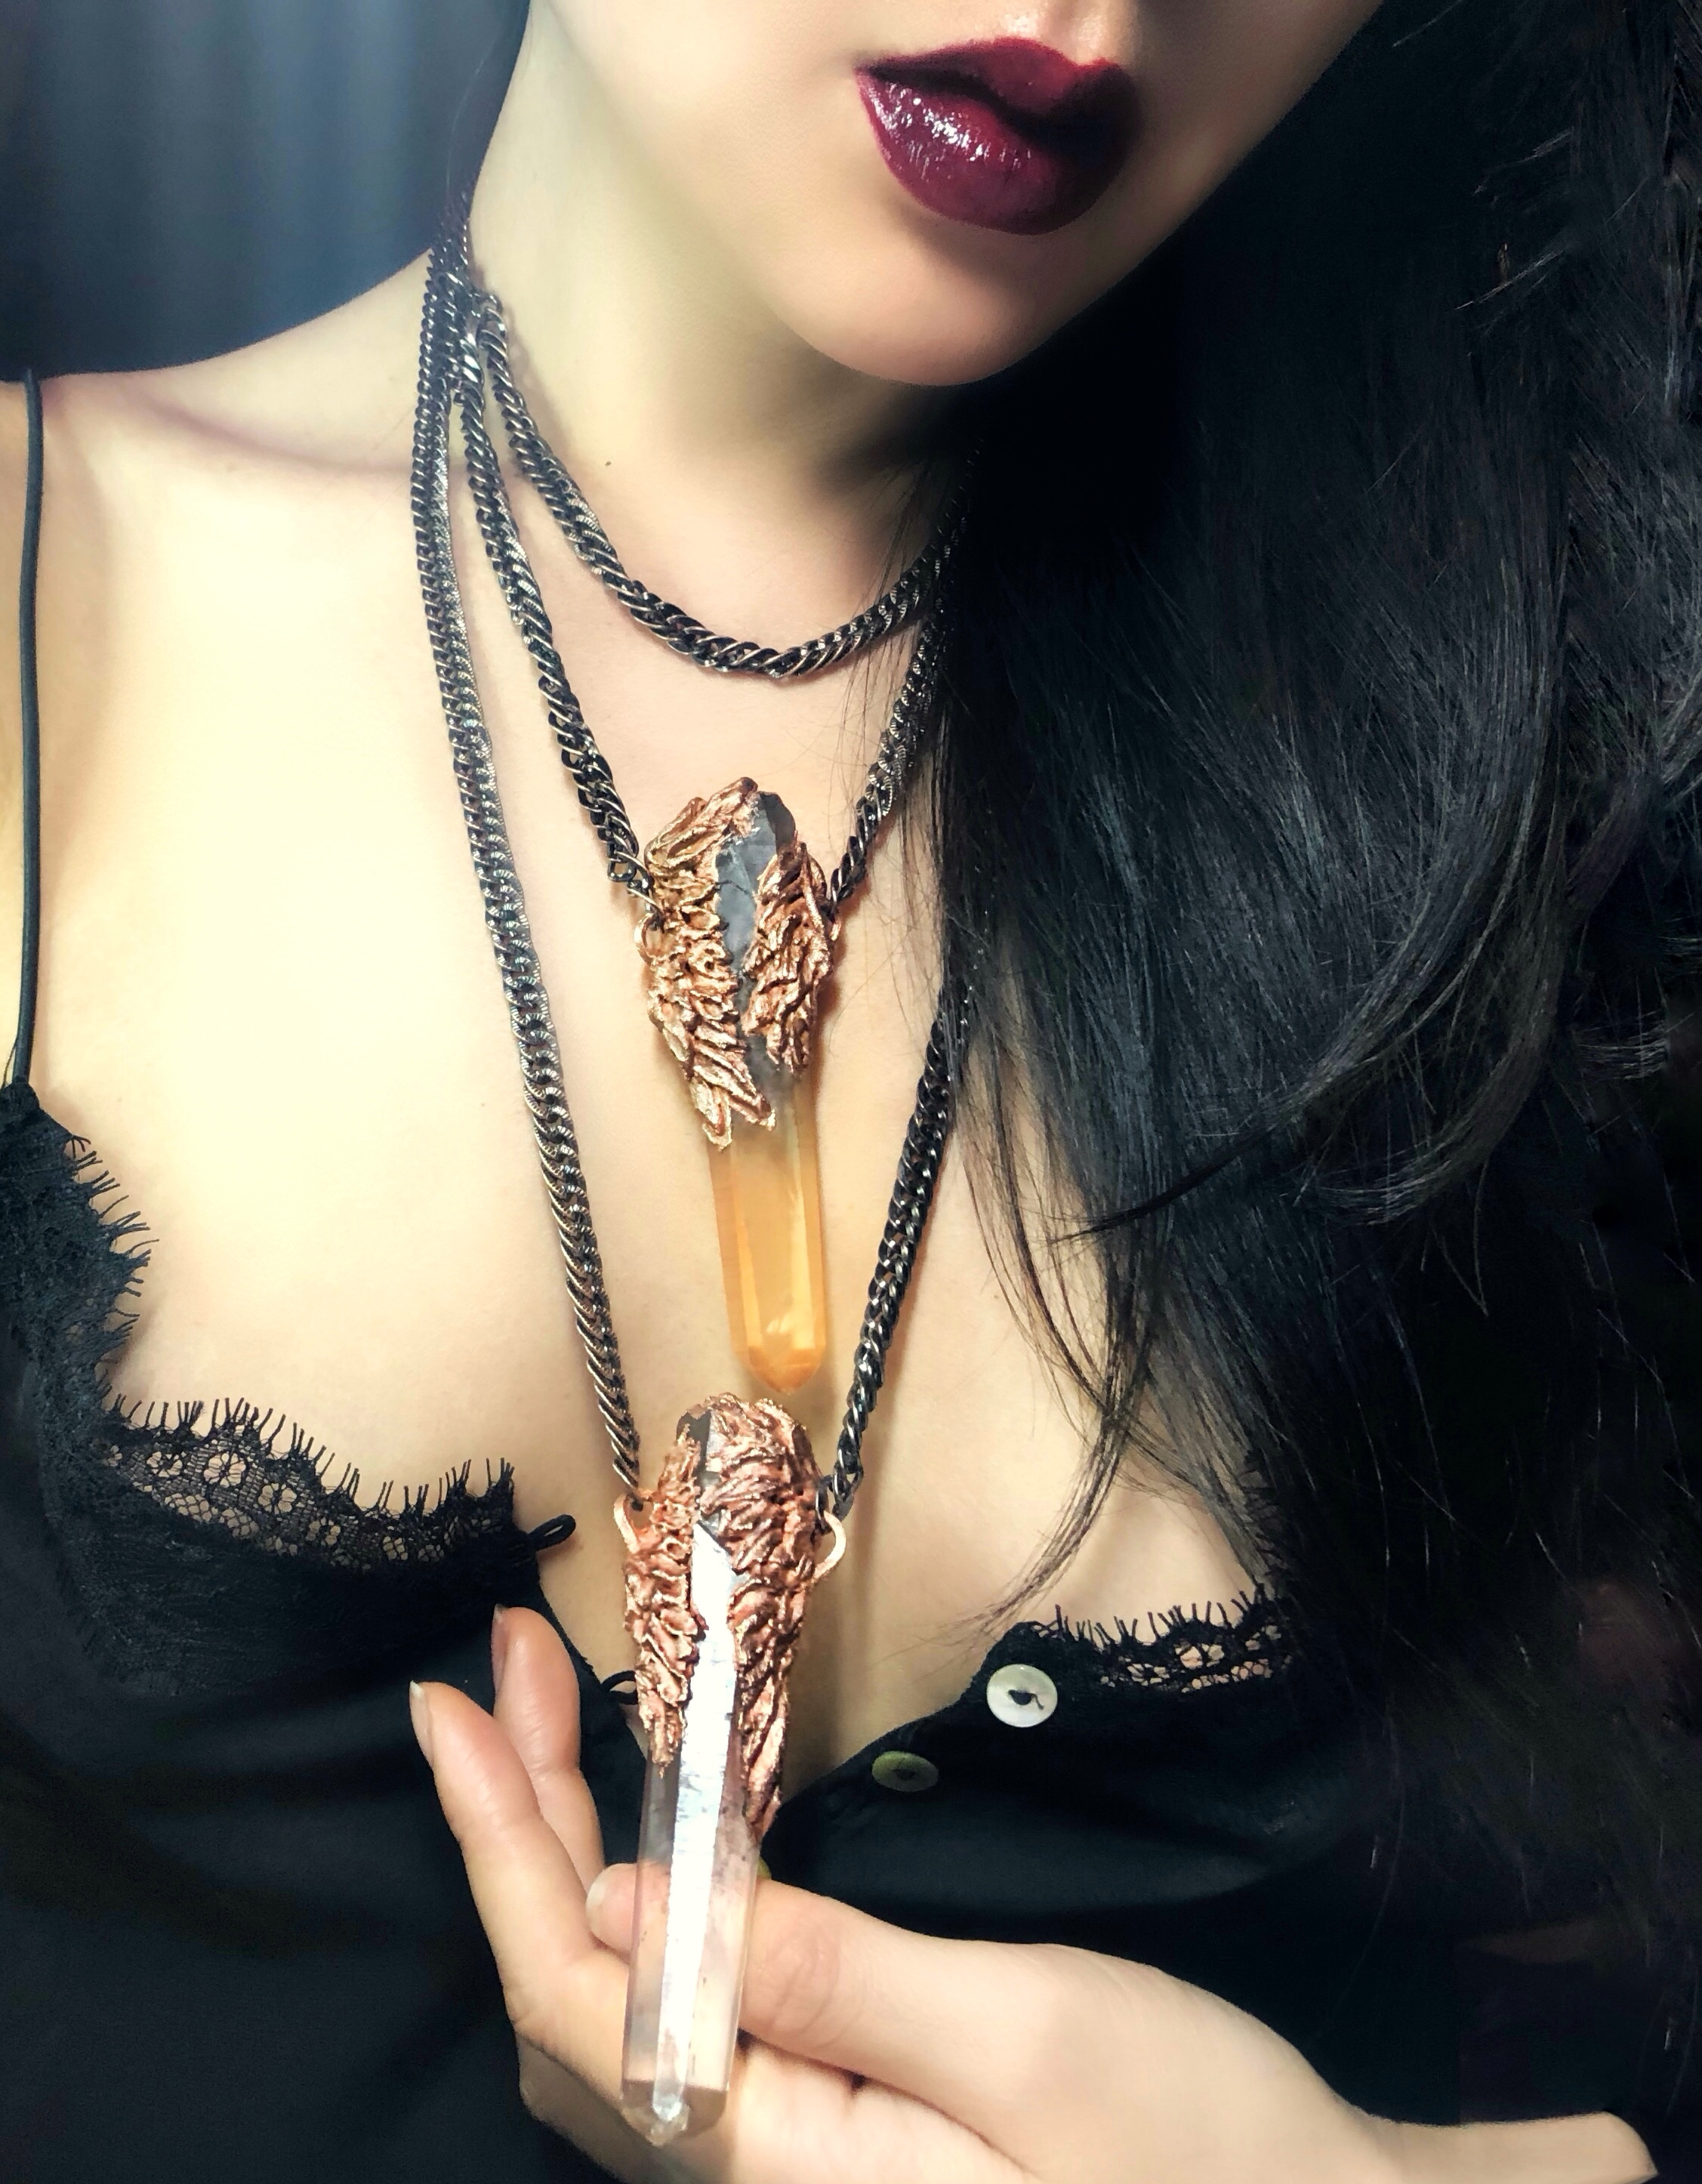 illumin designs winged lemurian necklace angel pai